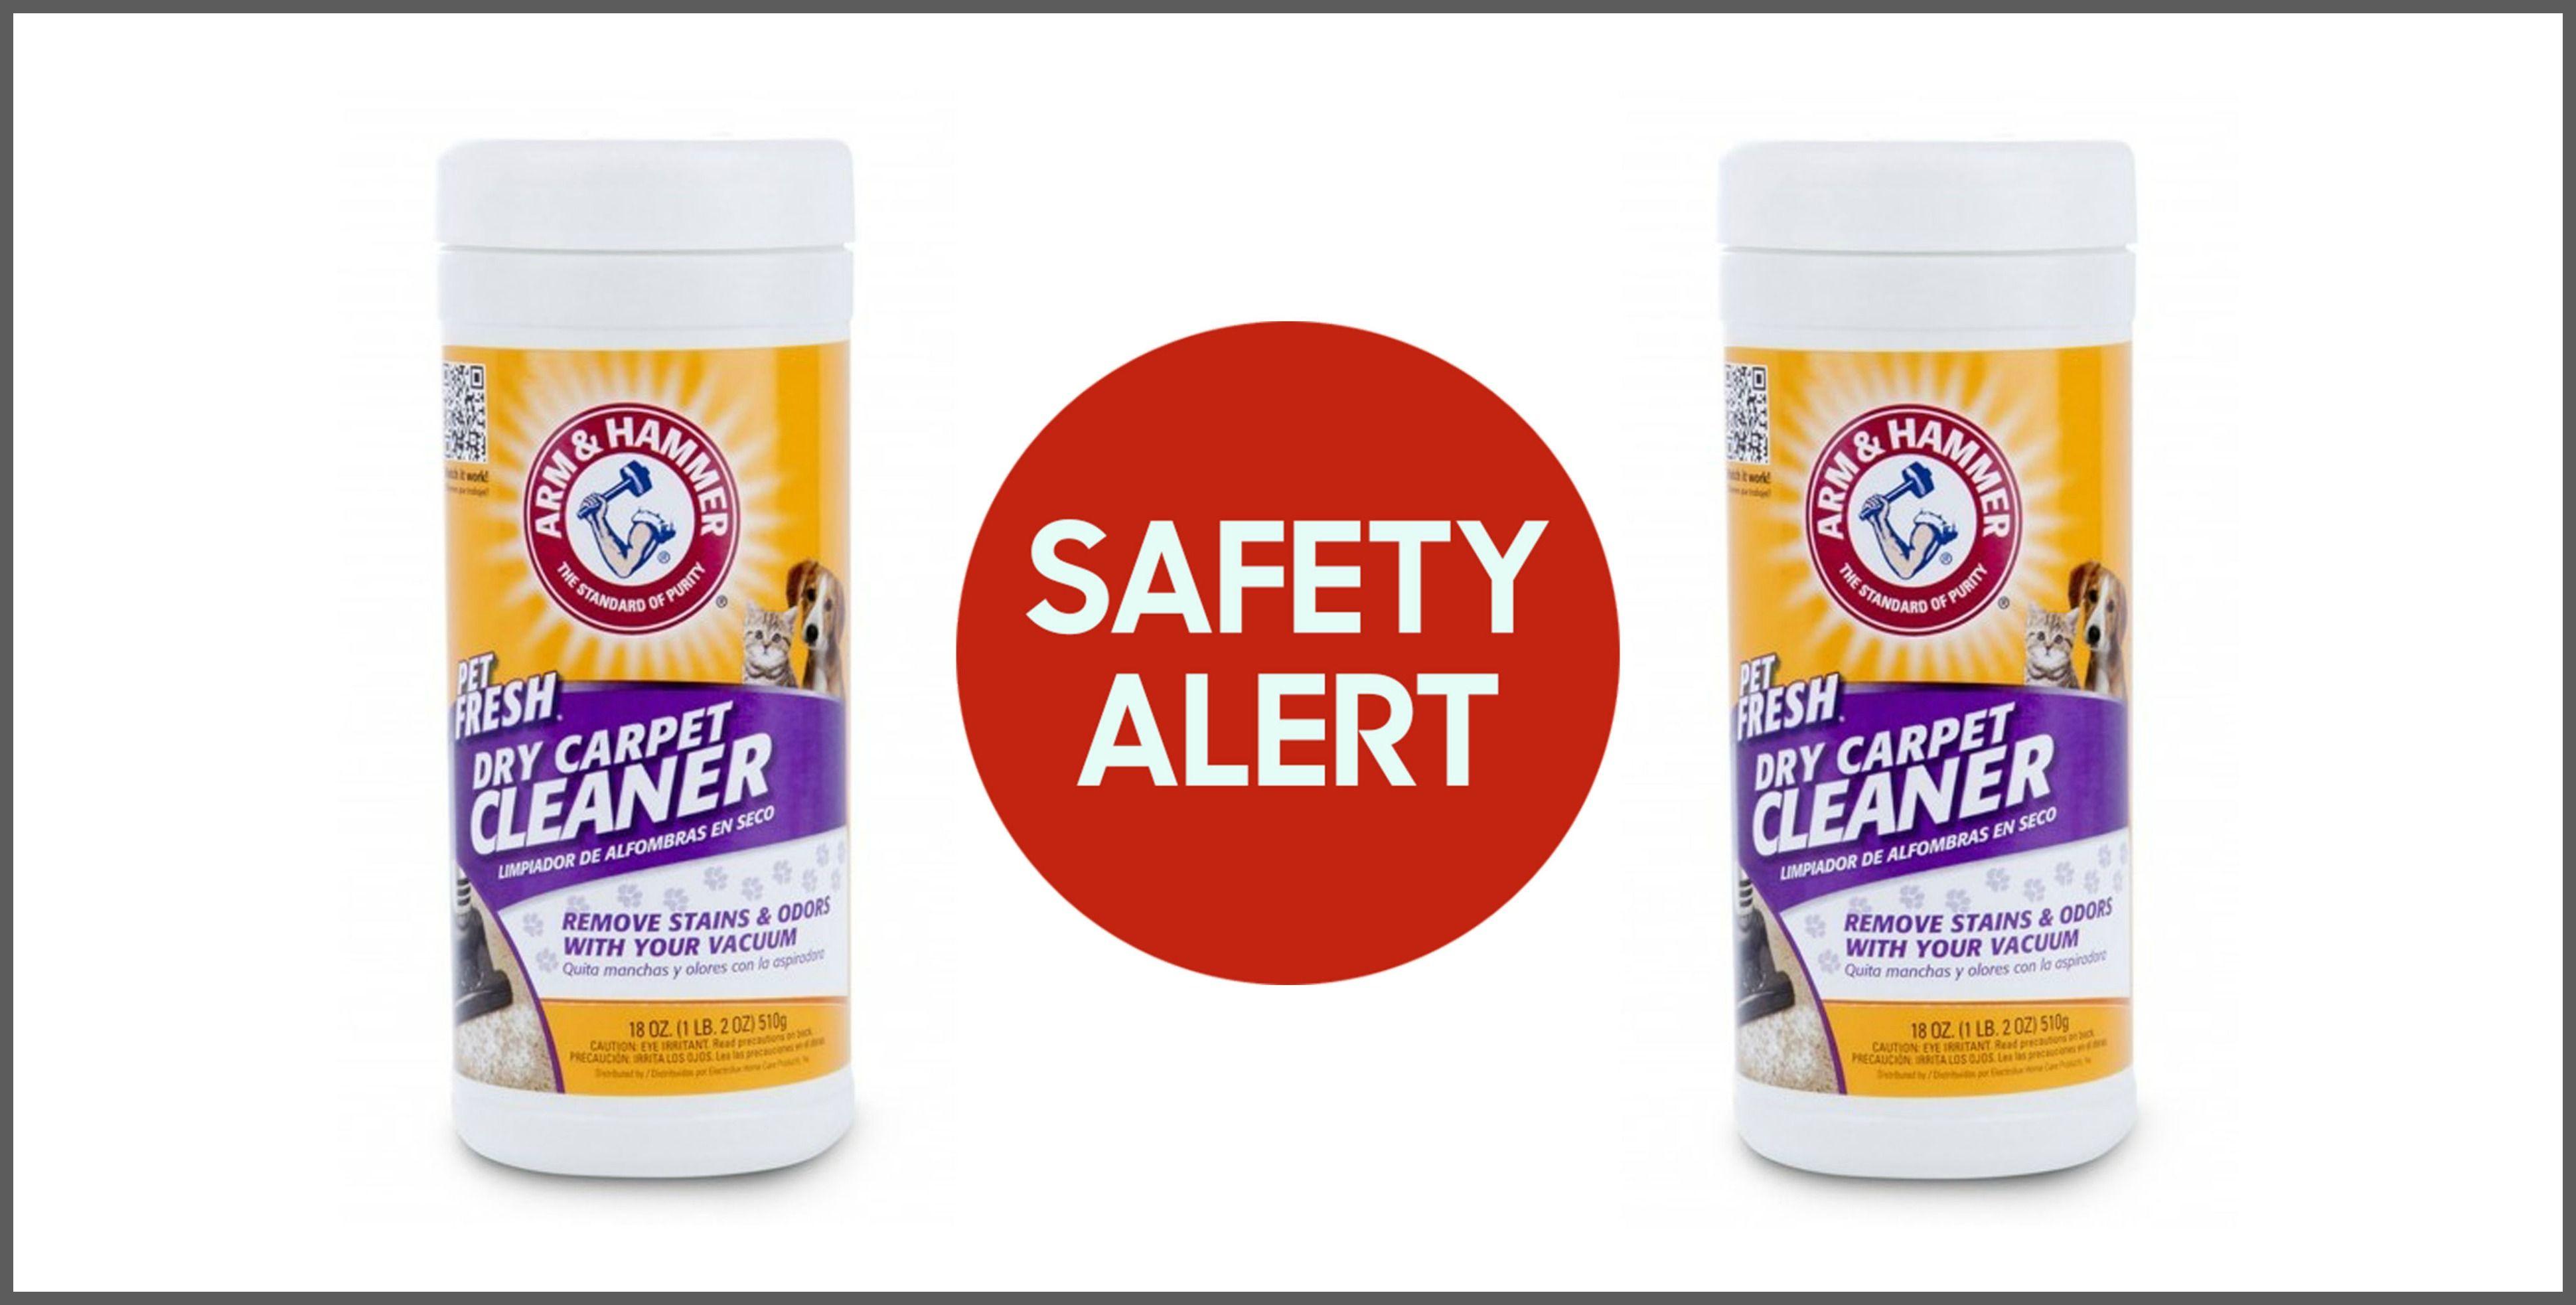 Dry Carpet Cleaning Powder Recalled Due